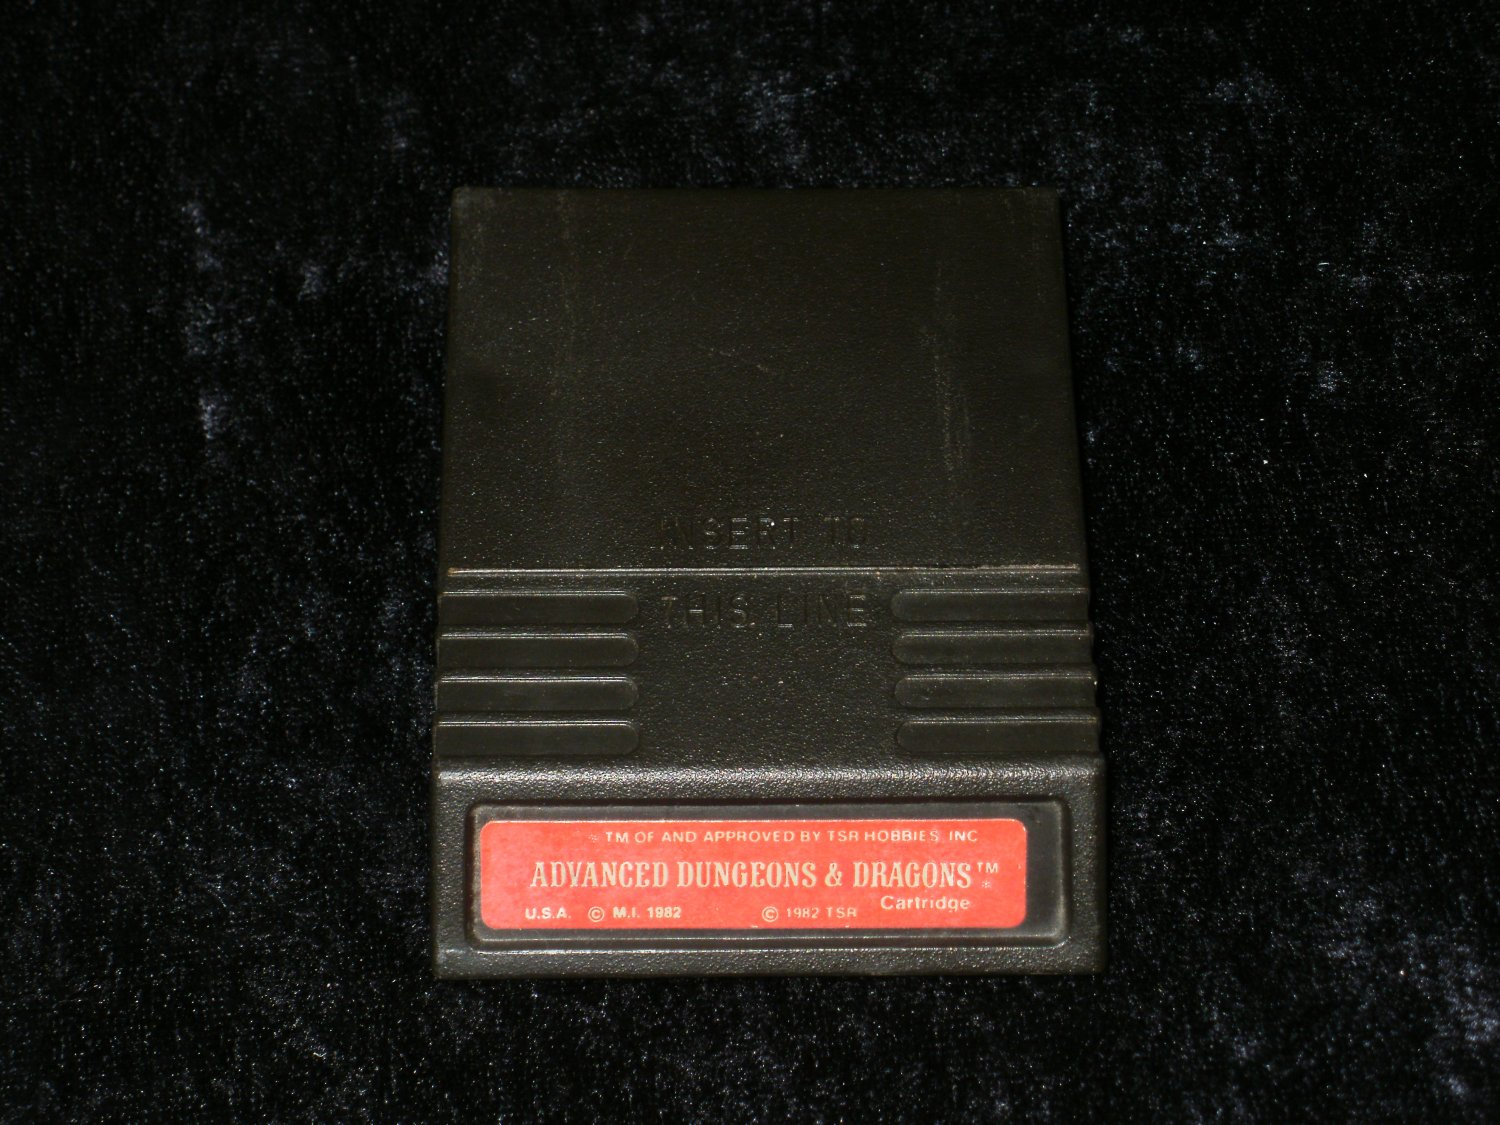 Advanced Dungeons & Dragons - Mattel Intellivision